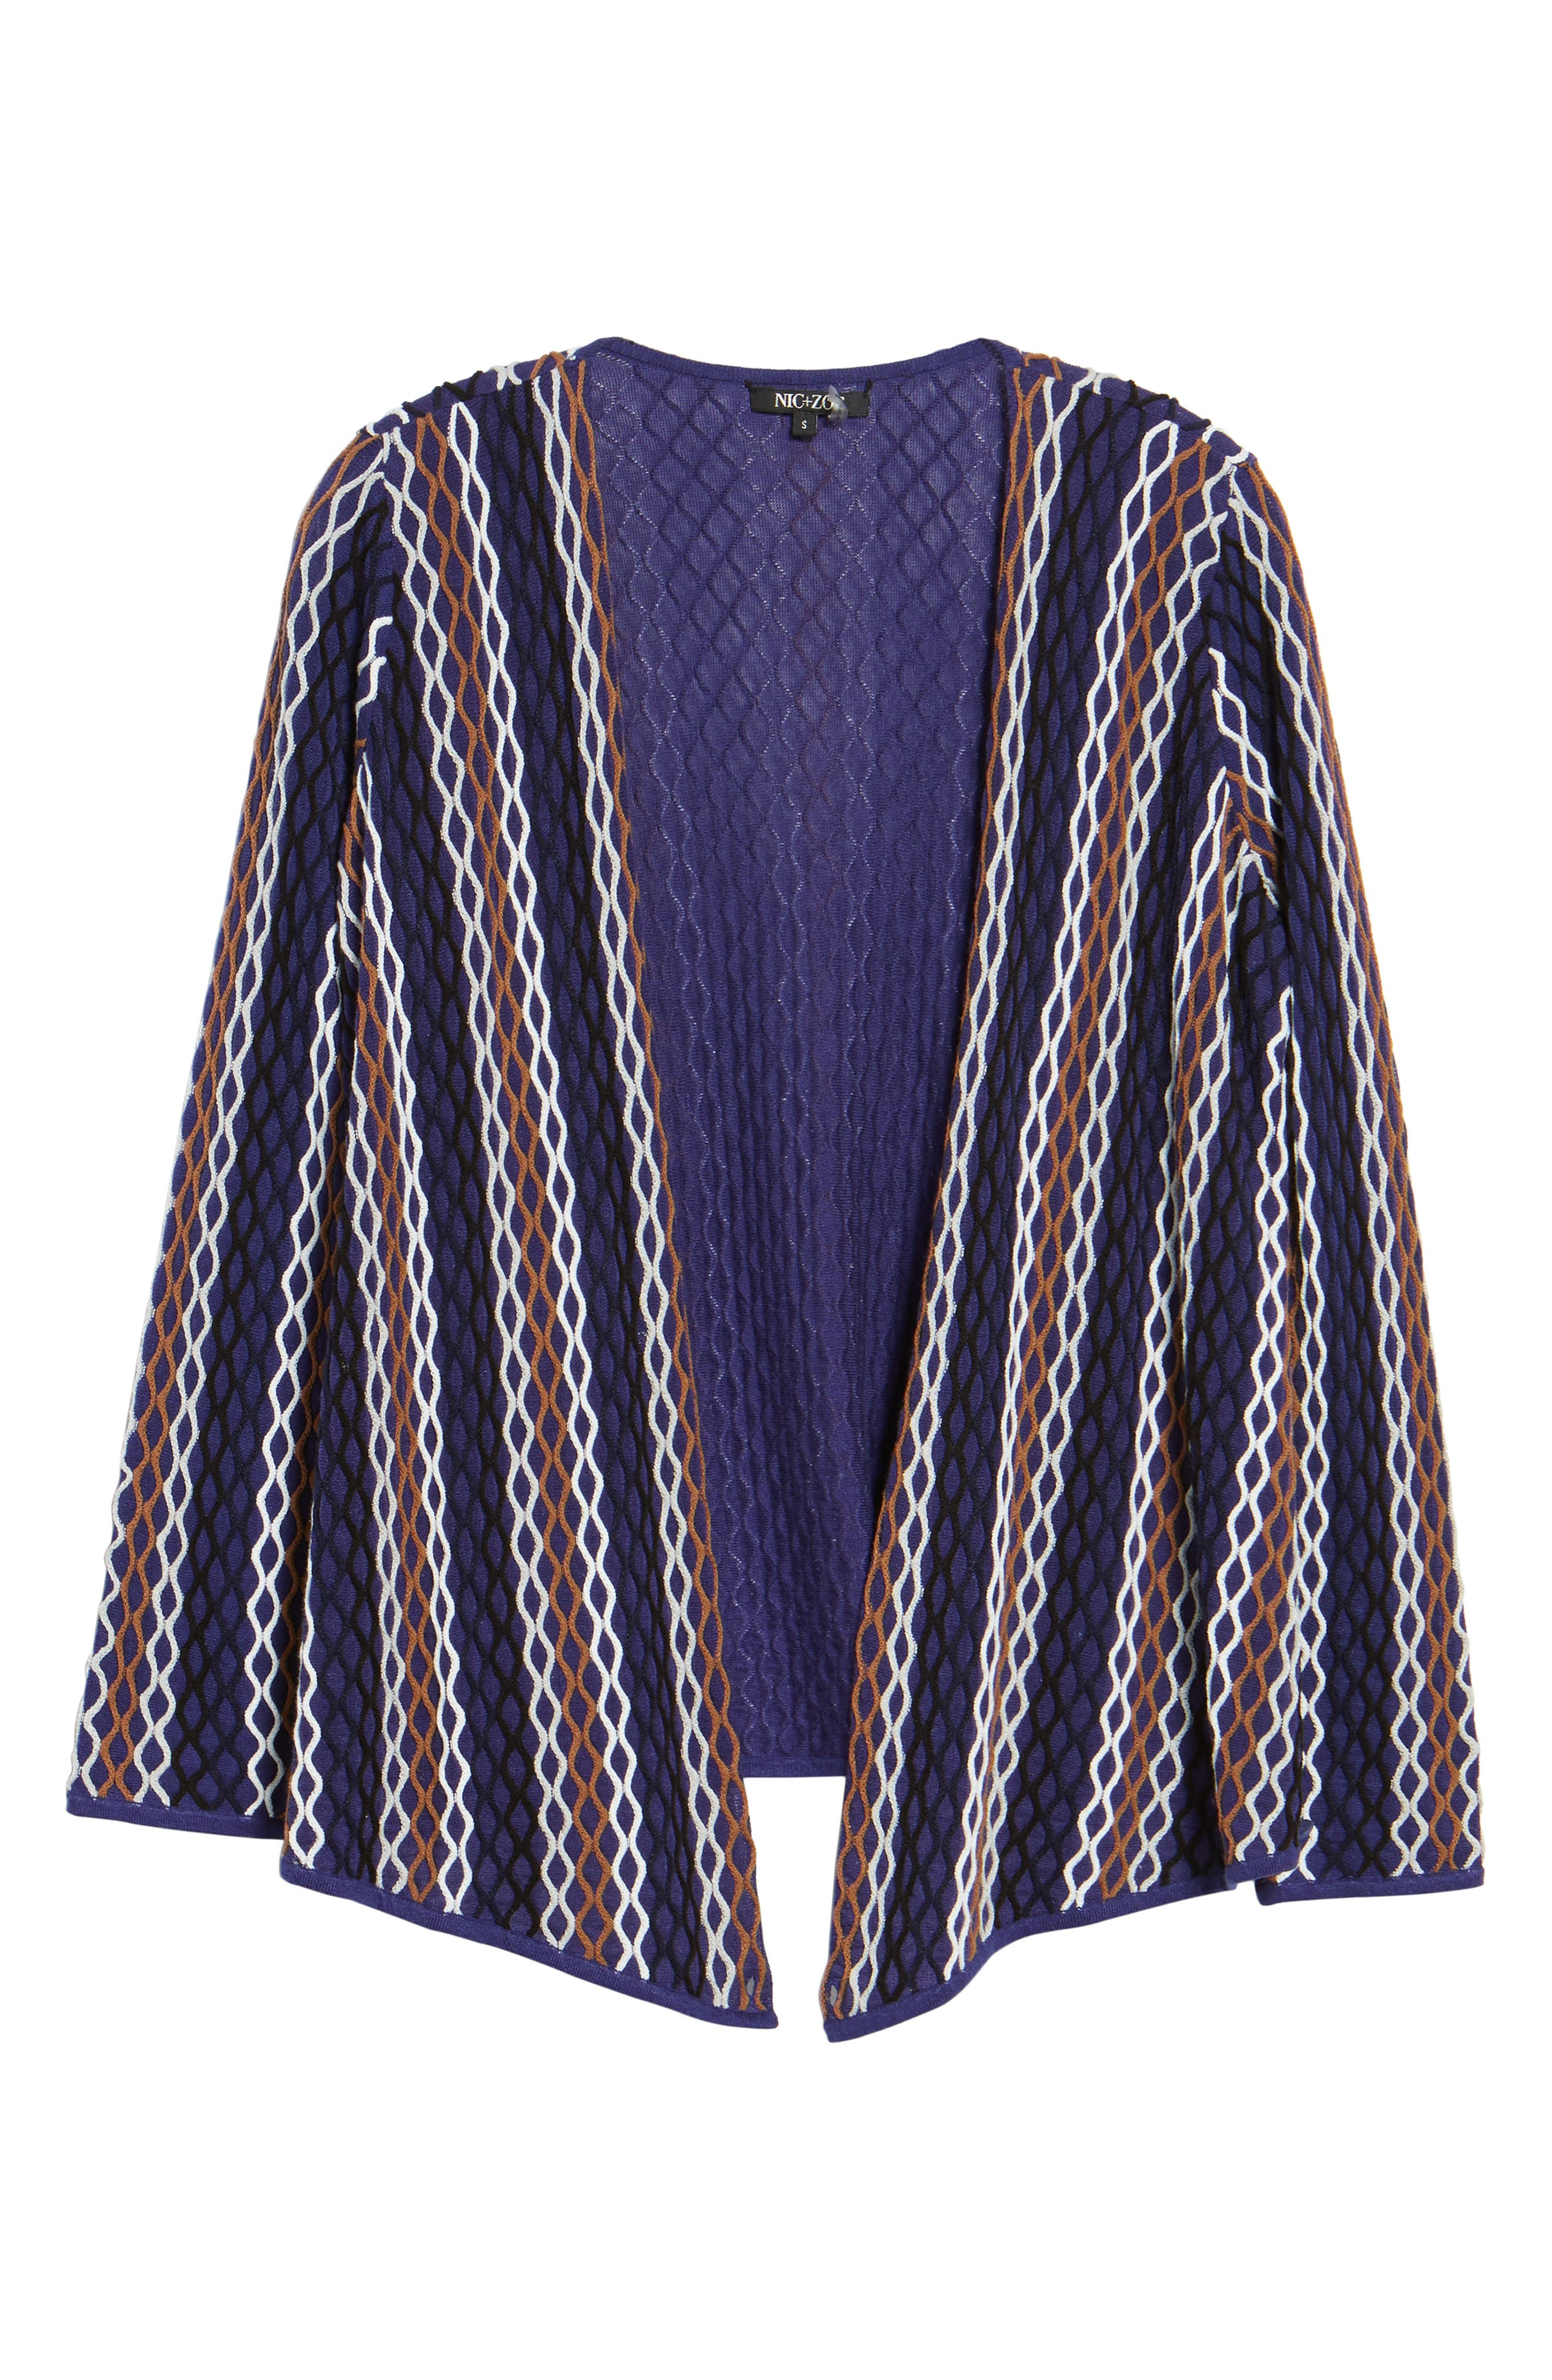 NIC+ ZOE Squiggled Up 4-Way Convertible Cardigan,                             Alternate thumbnail 6, color,                             Blue Multi